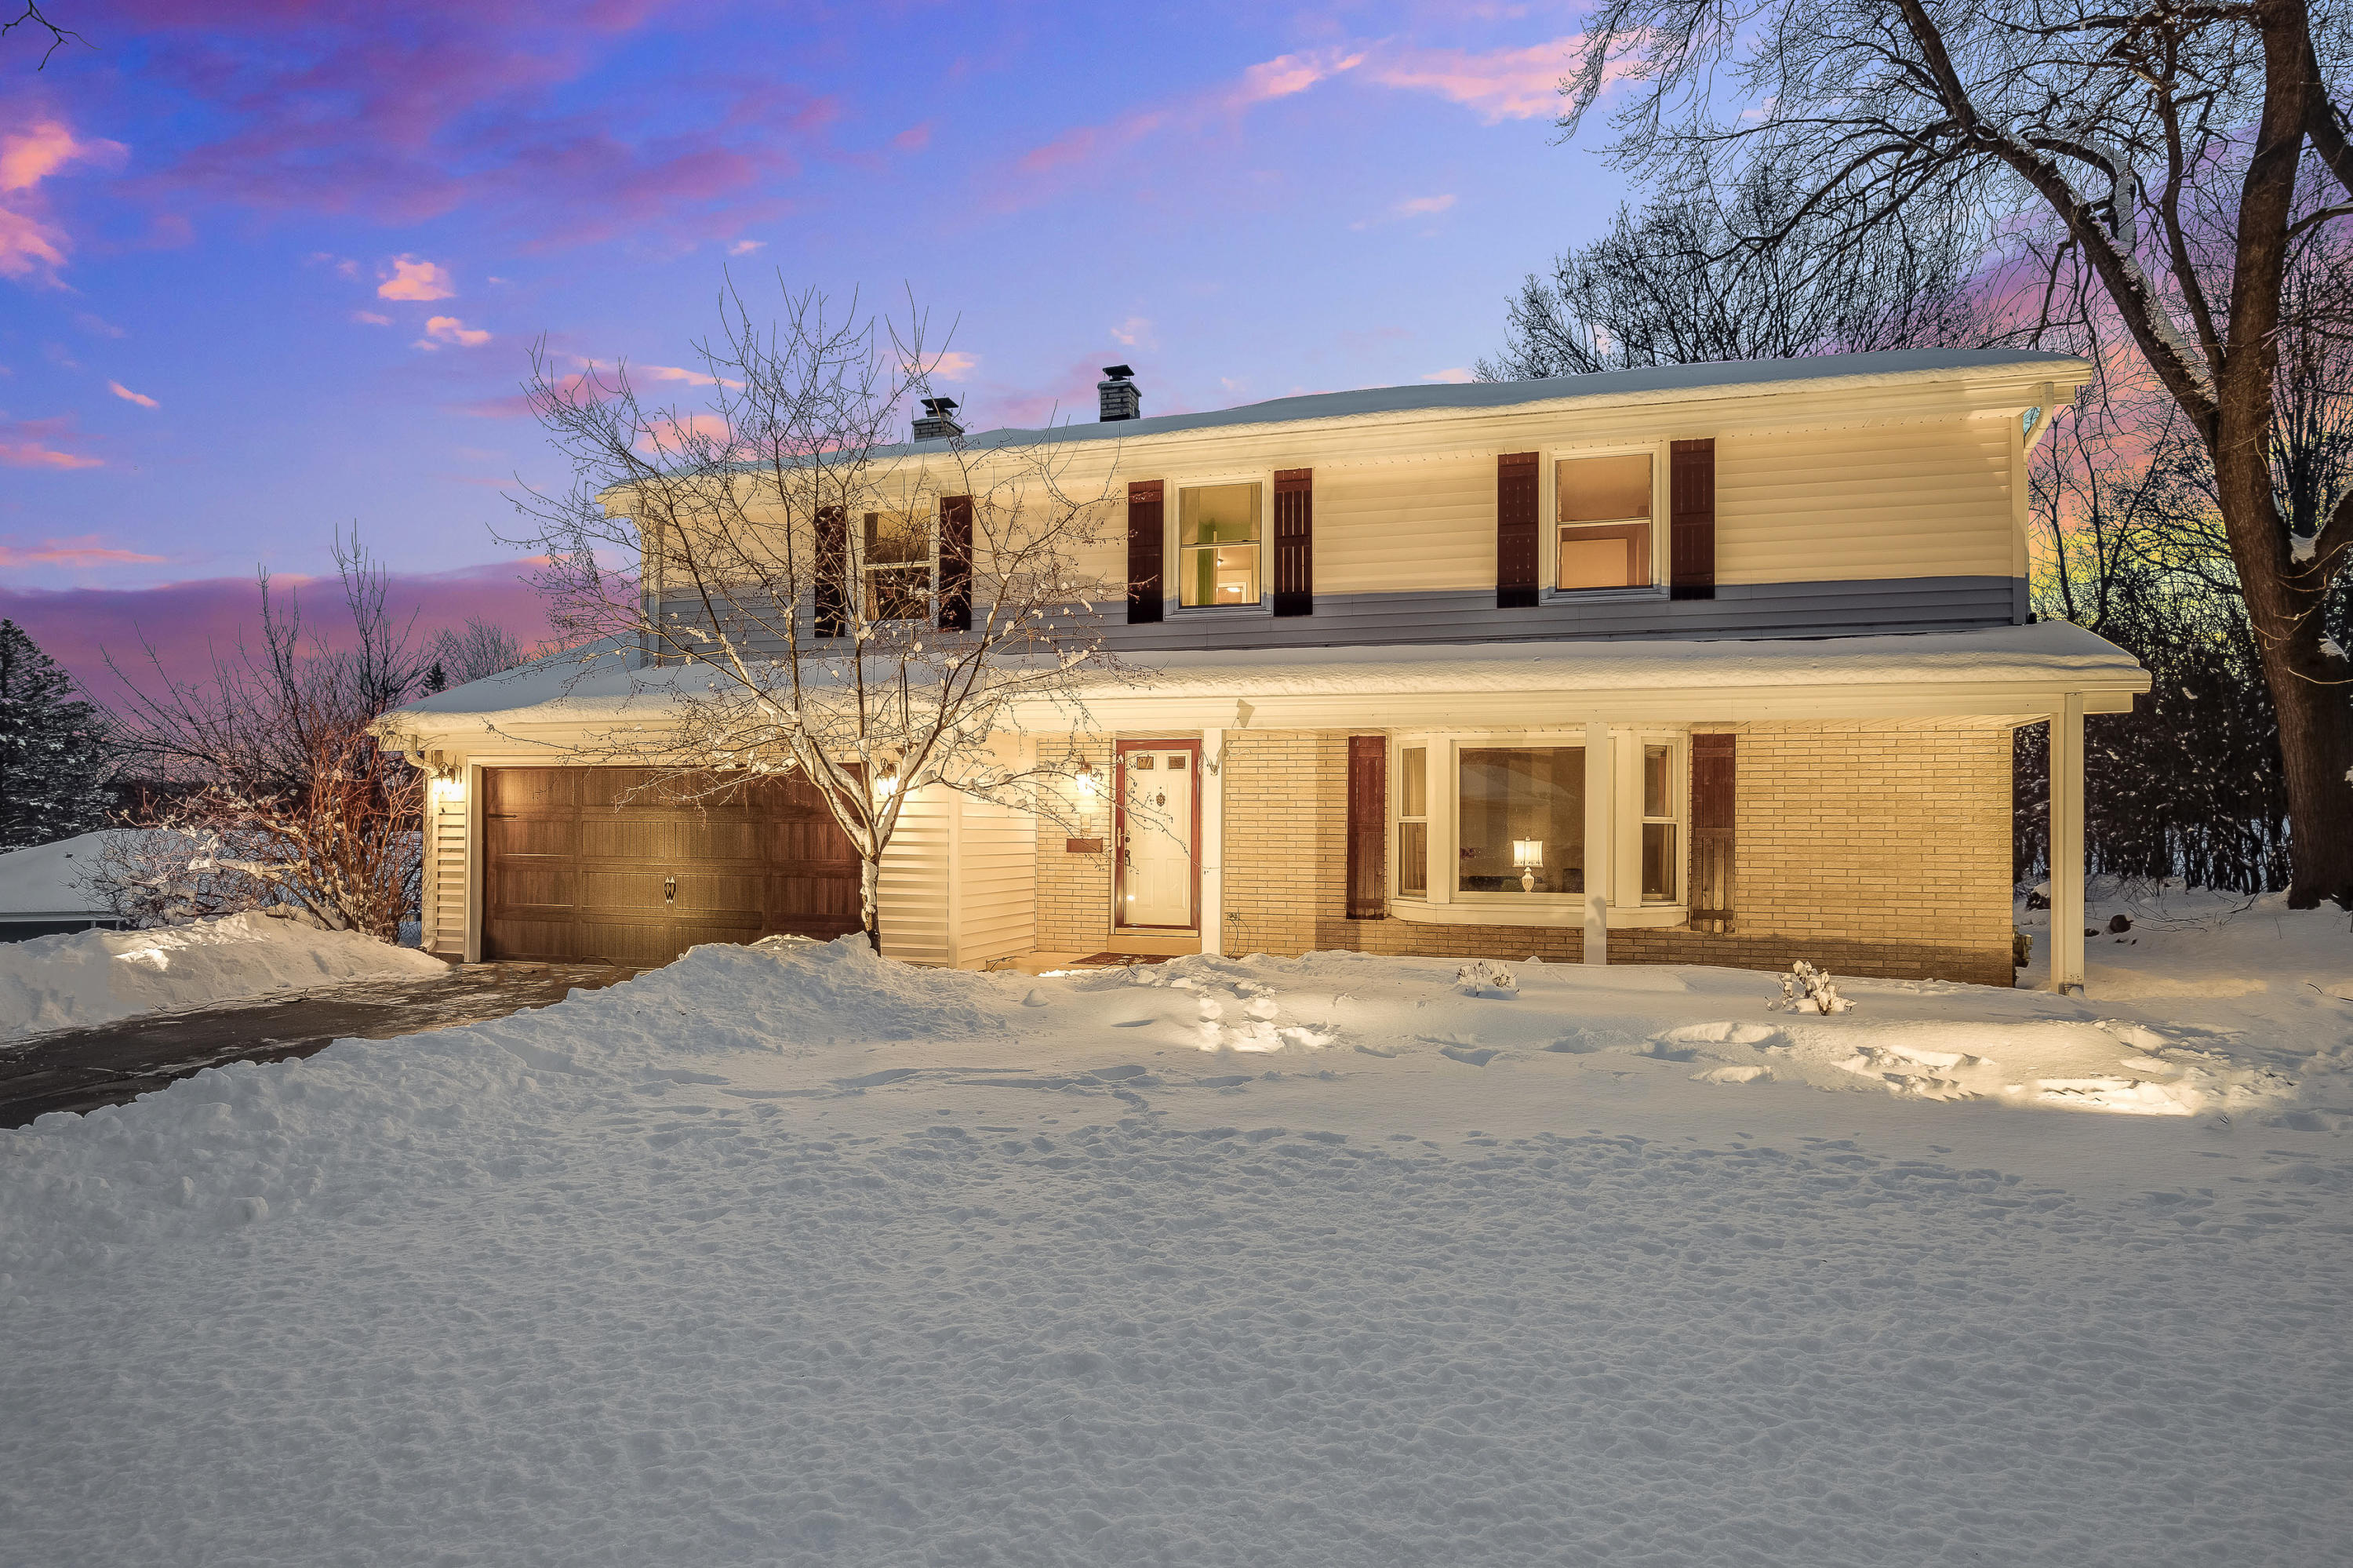 1309 Lynne Dr, Waukesha, Wisconsin 53186, 5 Bedrooms Bedrooms, 10 Rooms Rooms,1 BathroomBathrooms,Single-Family,For Sale,Lynne Dr,1677020